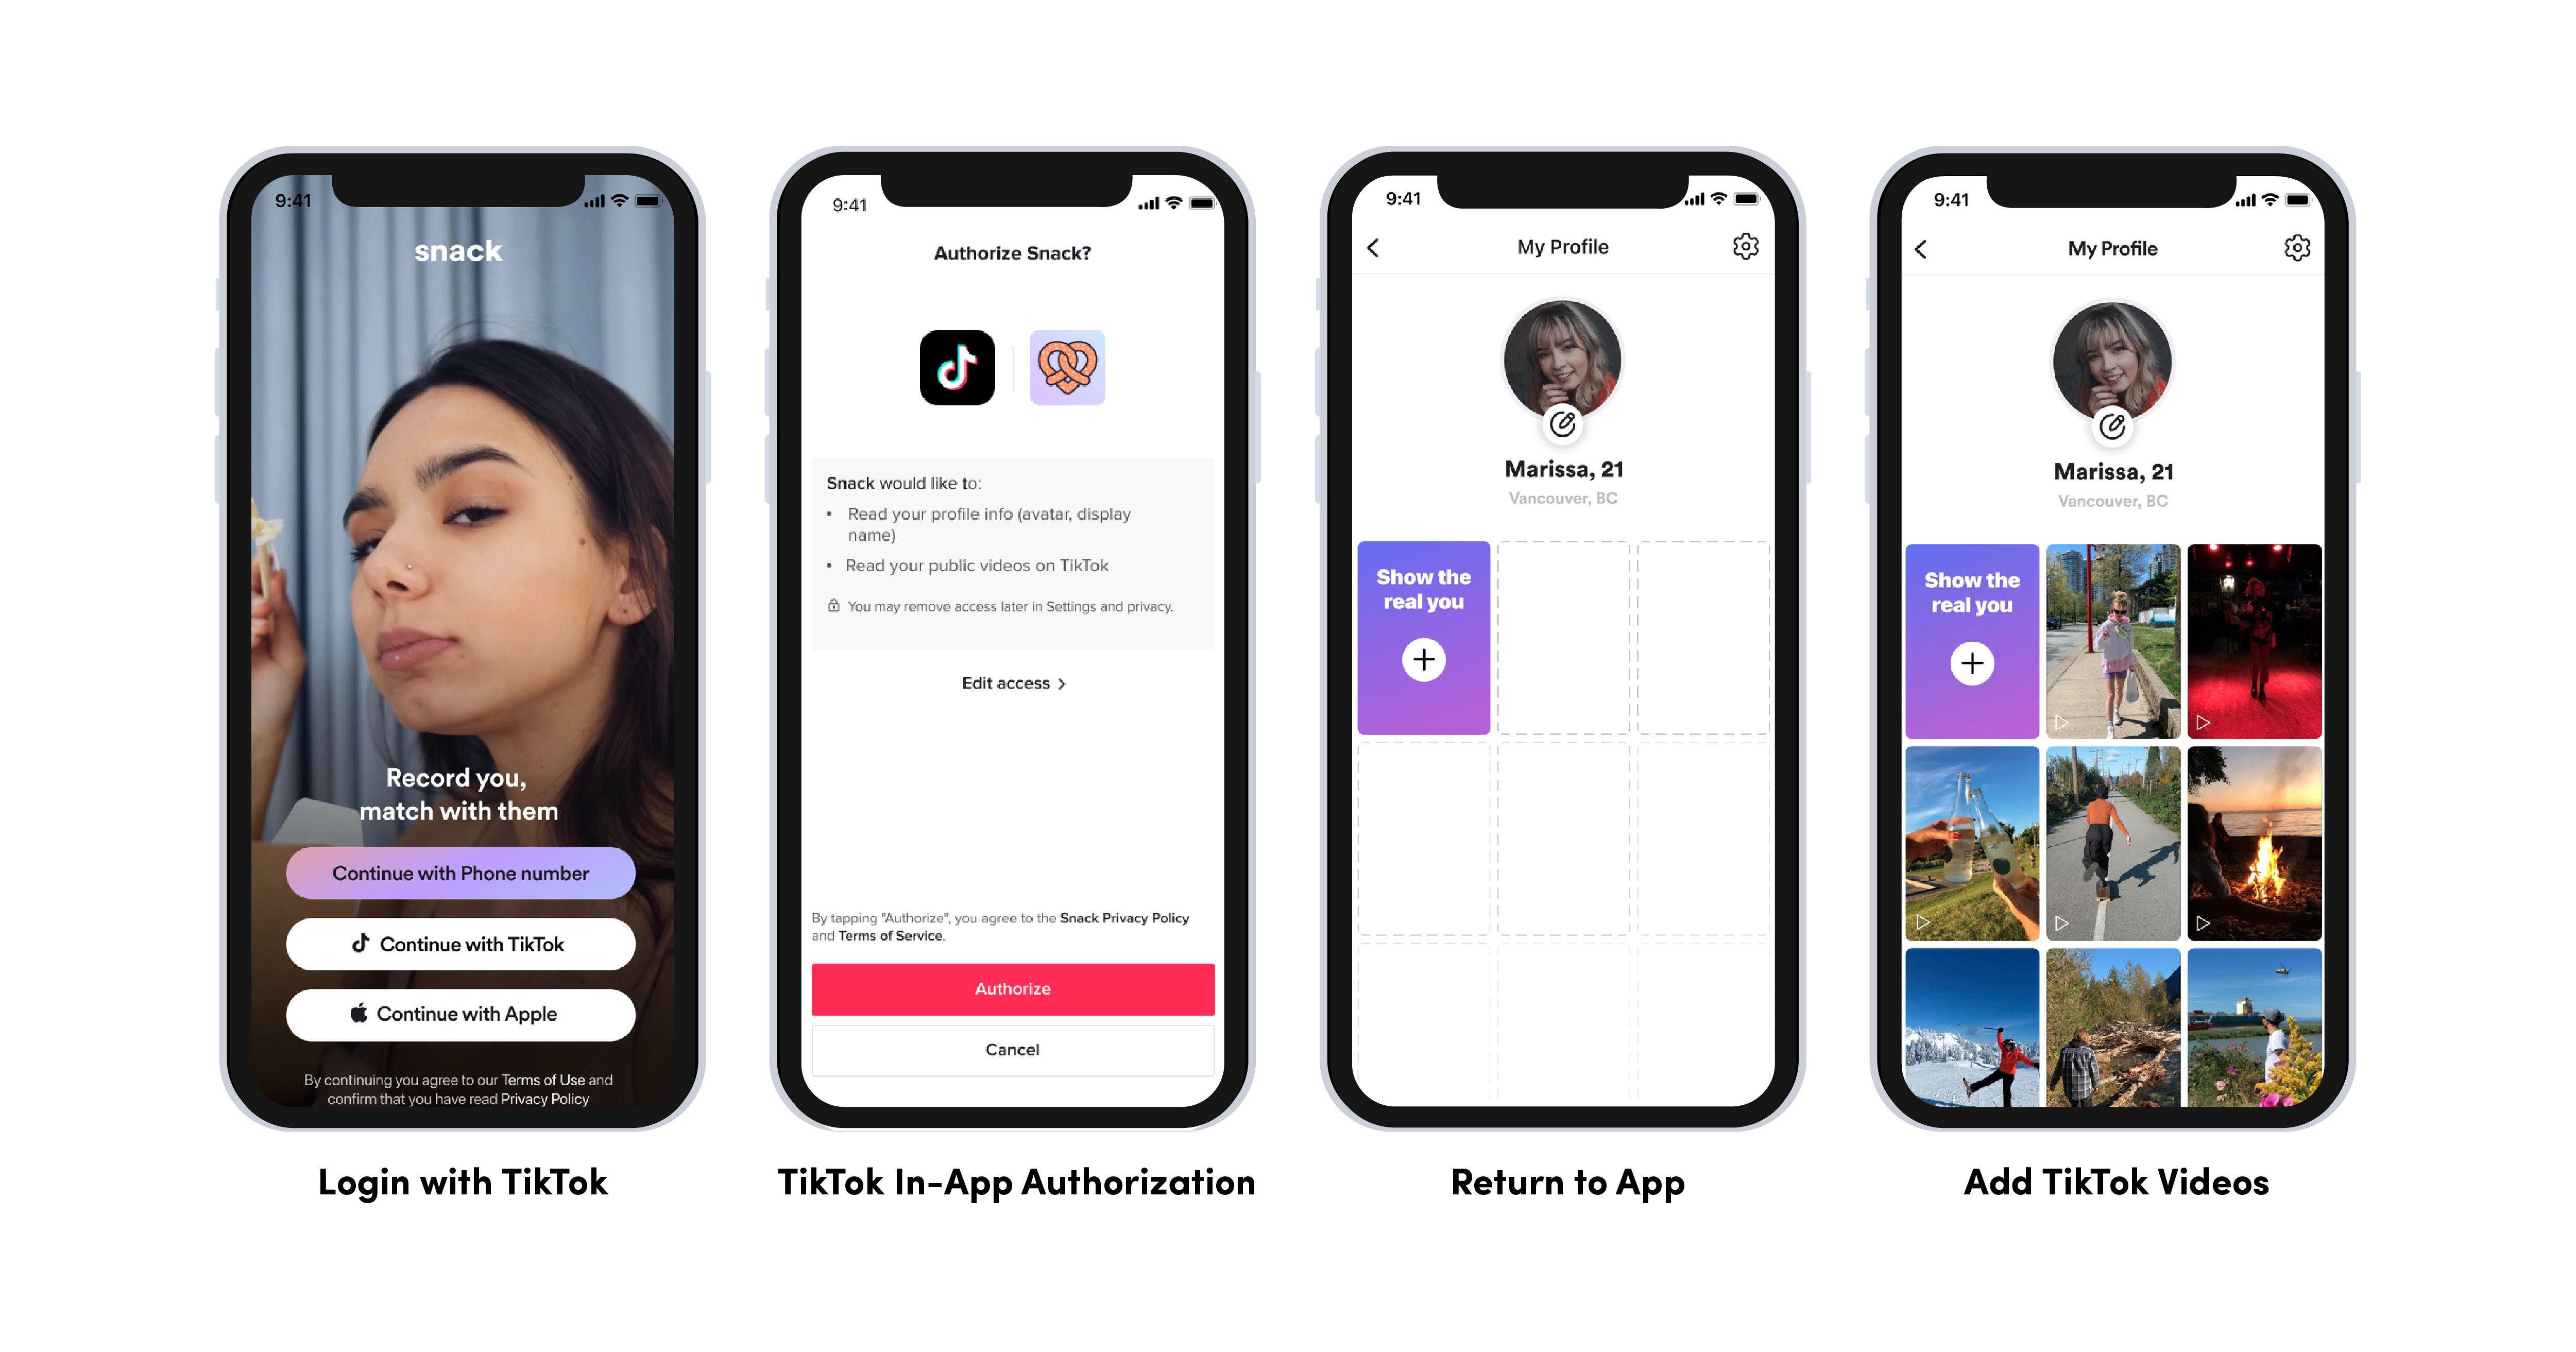 TikTok's new developer tools allow apps to offer 'Login with TikTok,' sound sharing, and more